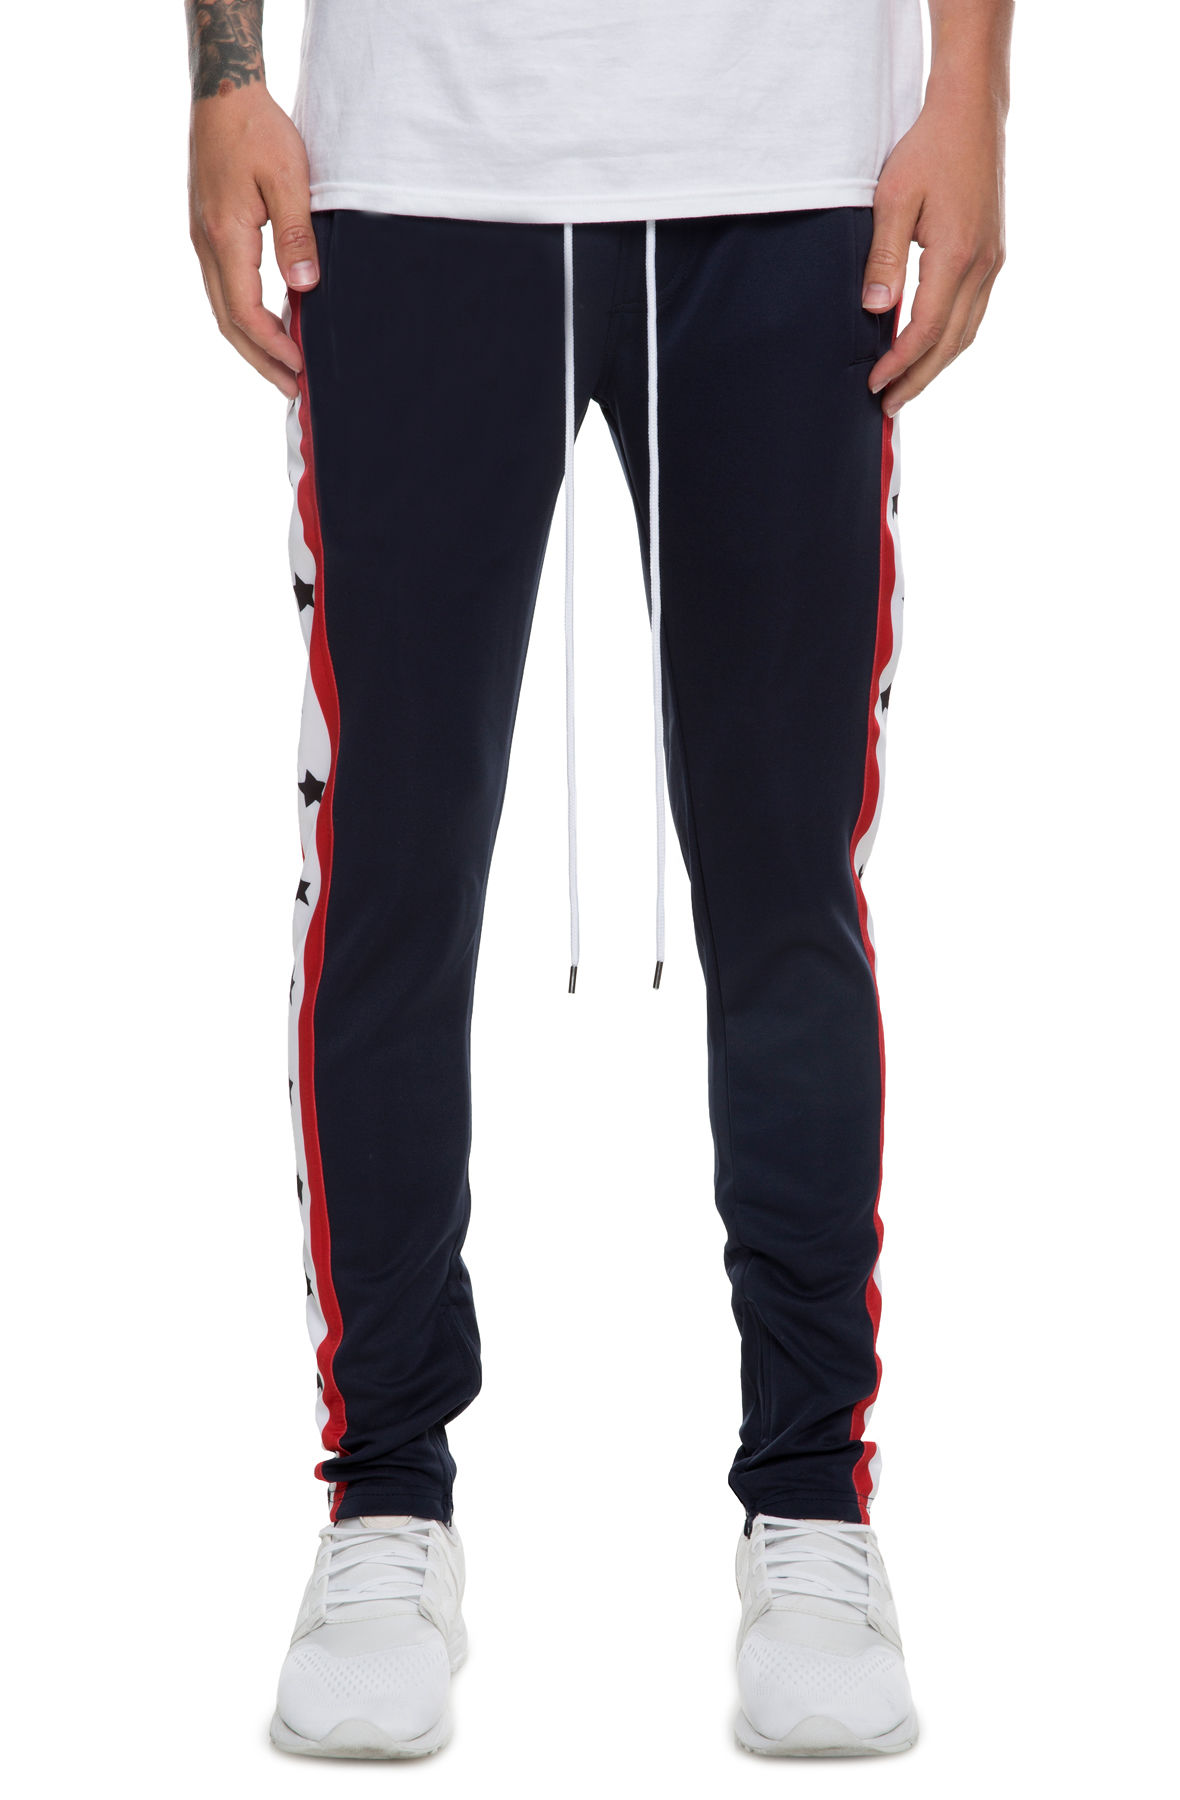 Image of The Independence Track Pants in Navy